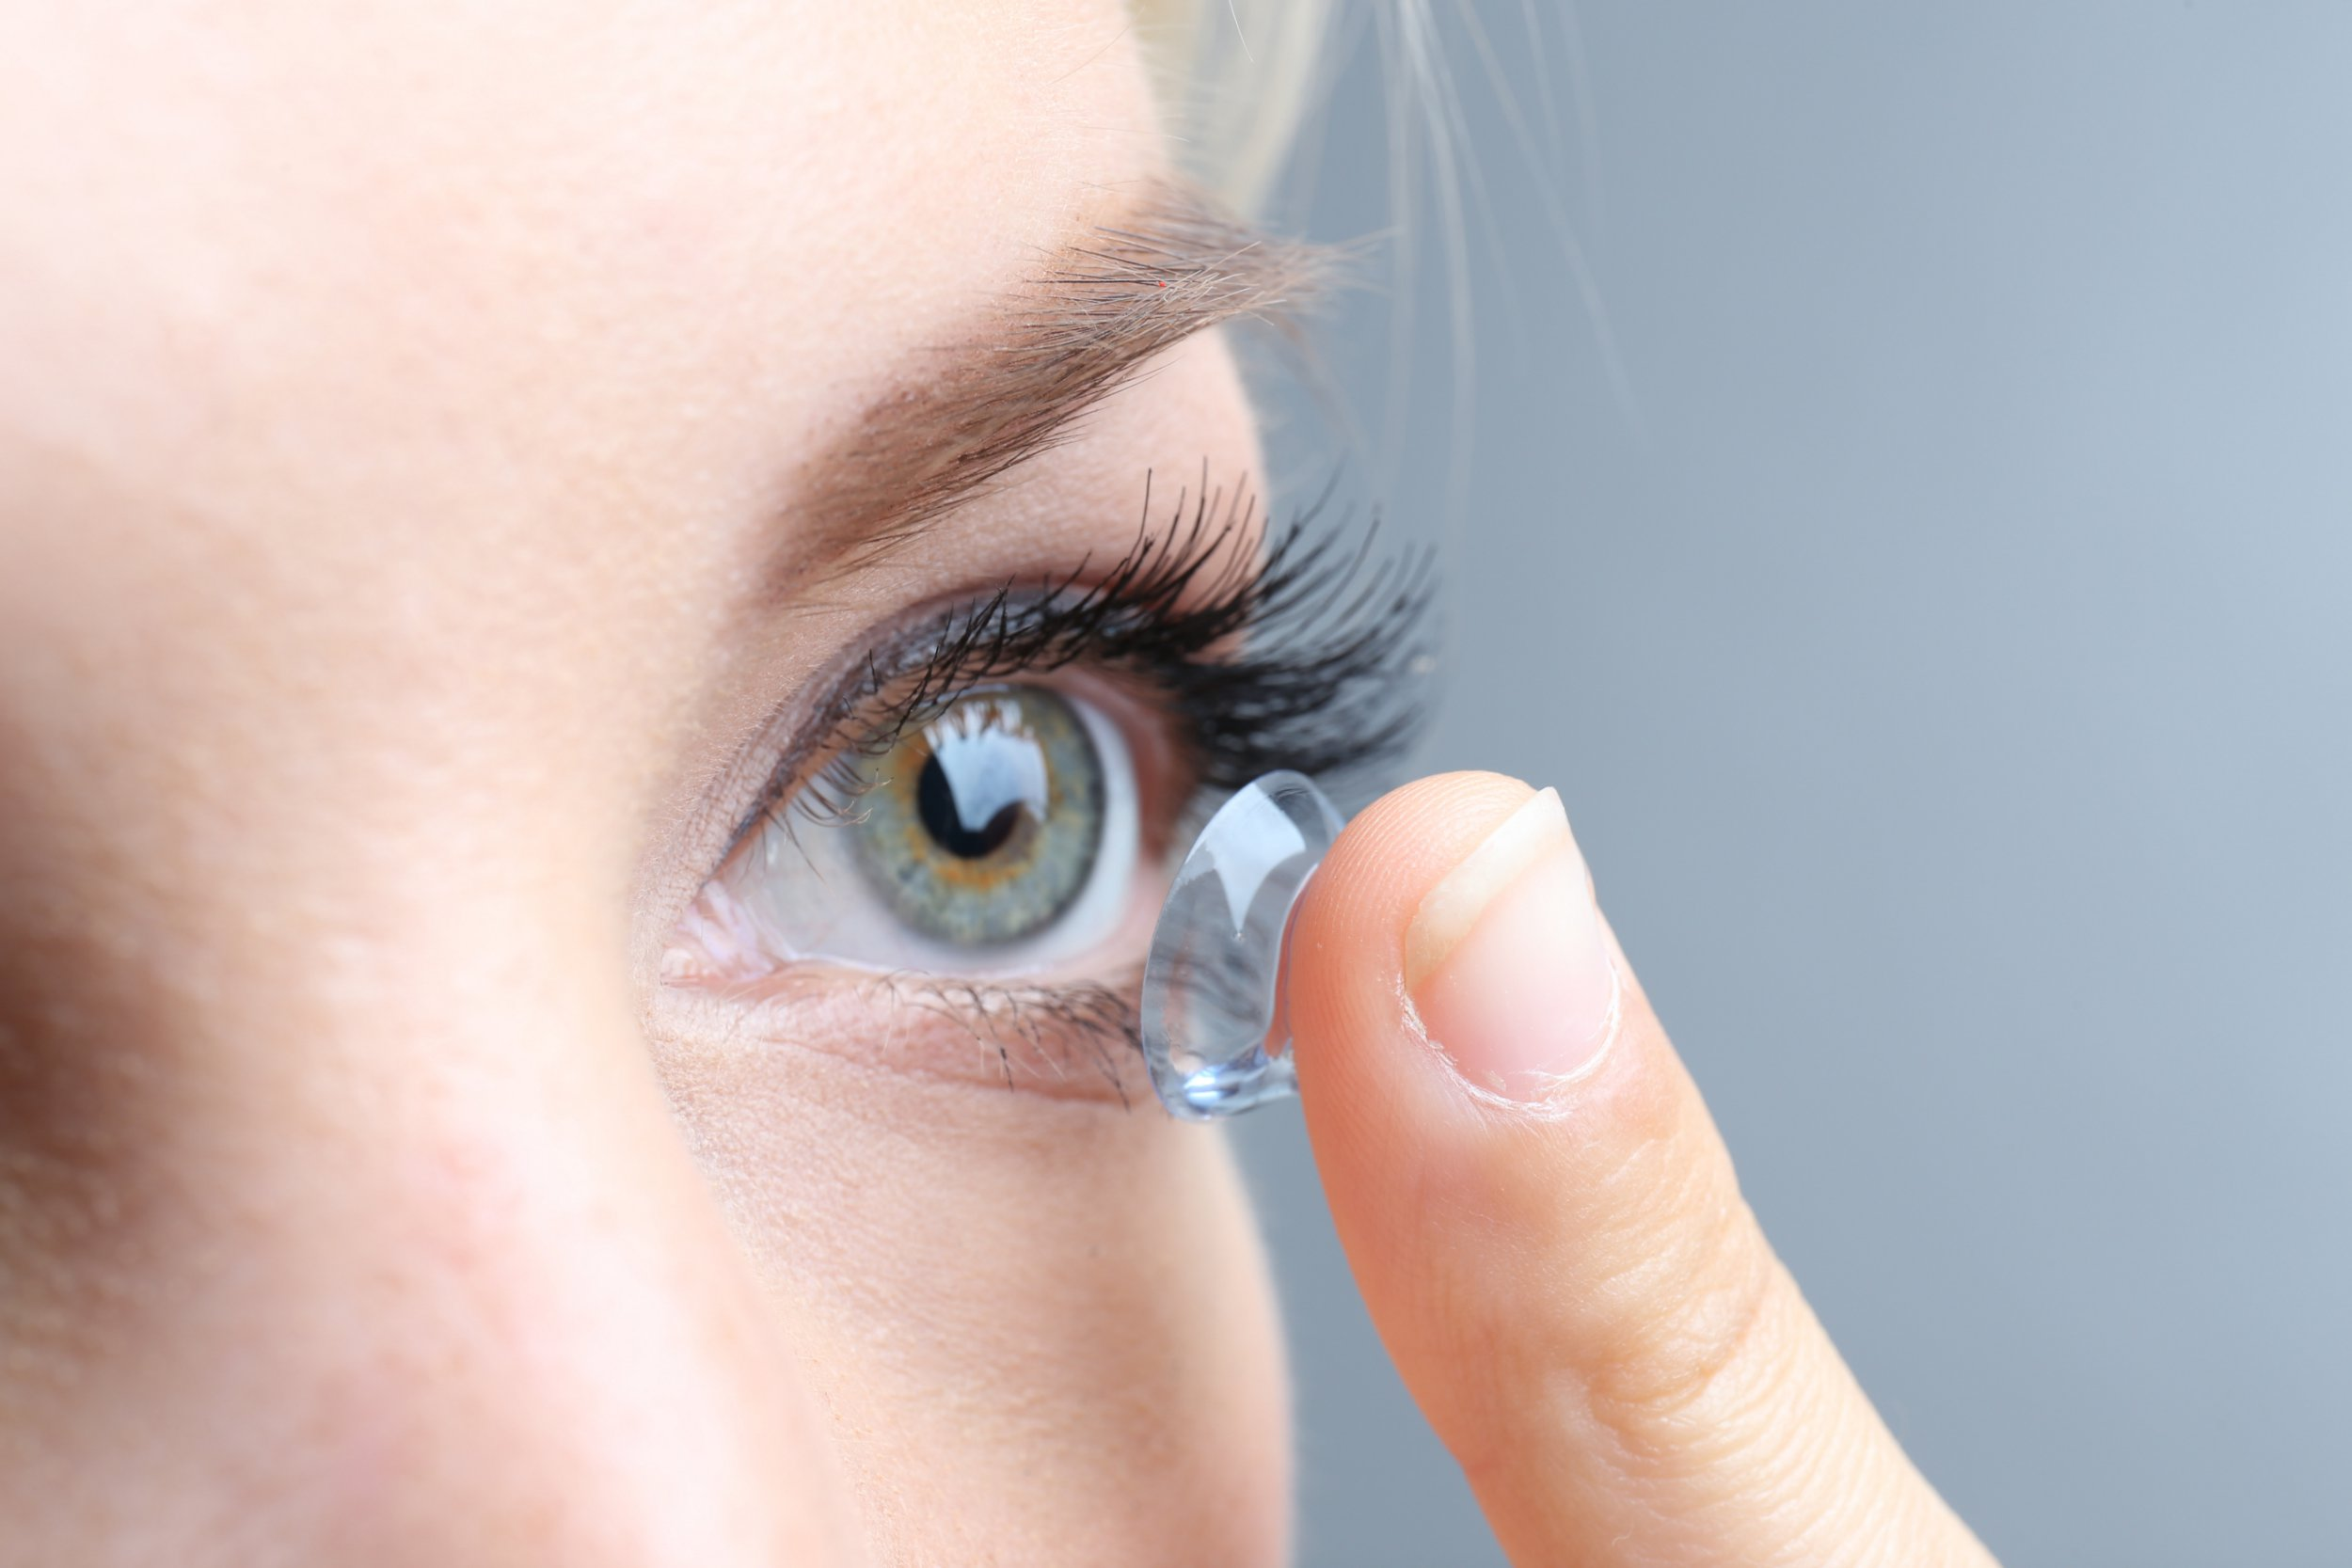 Medicine and vision concept - young woman with contact lens, close up; Shutterstock ID 226192345; Purchase Order: -